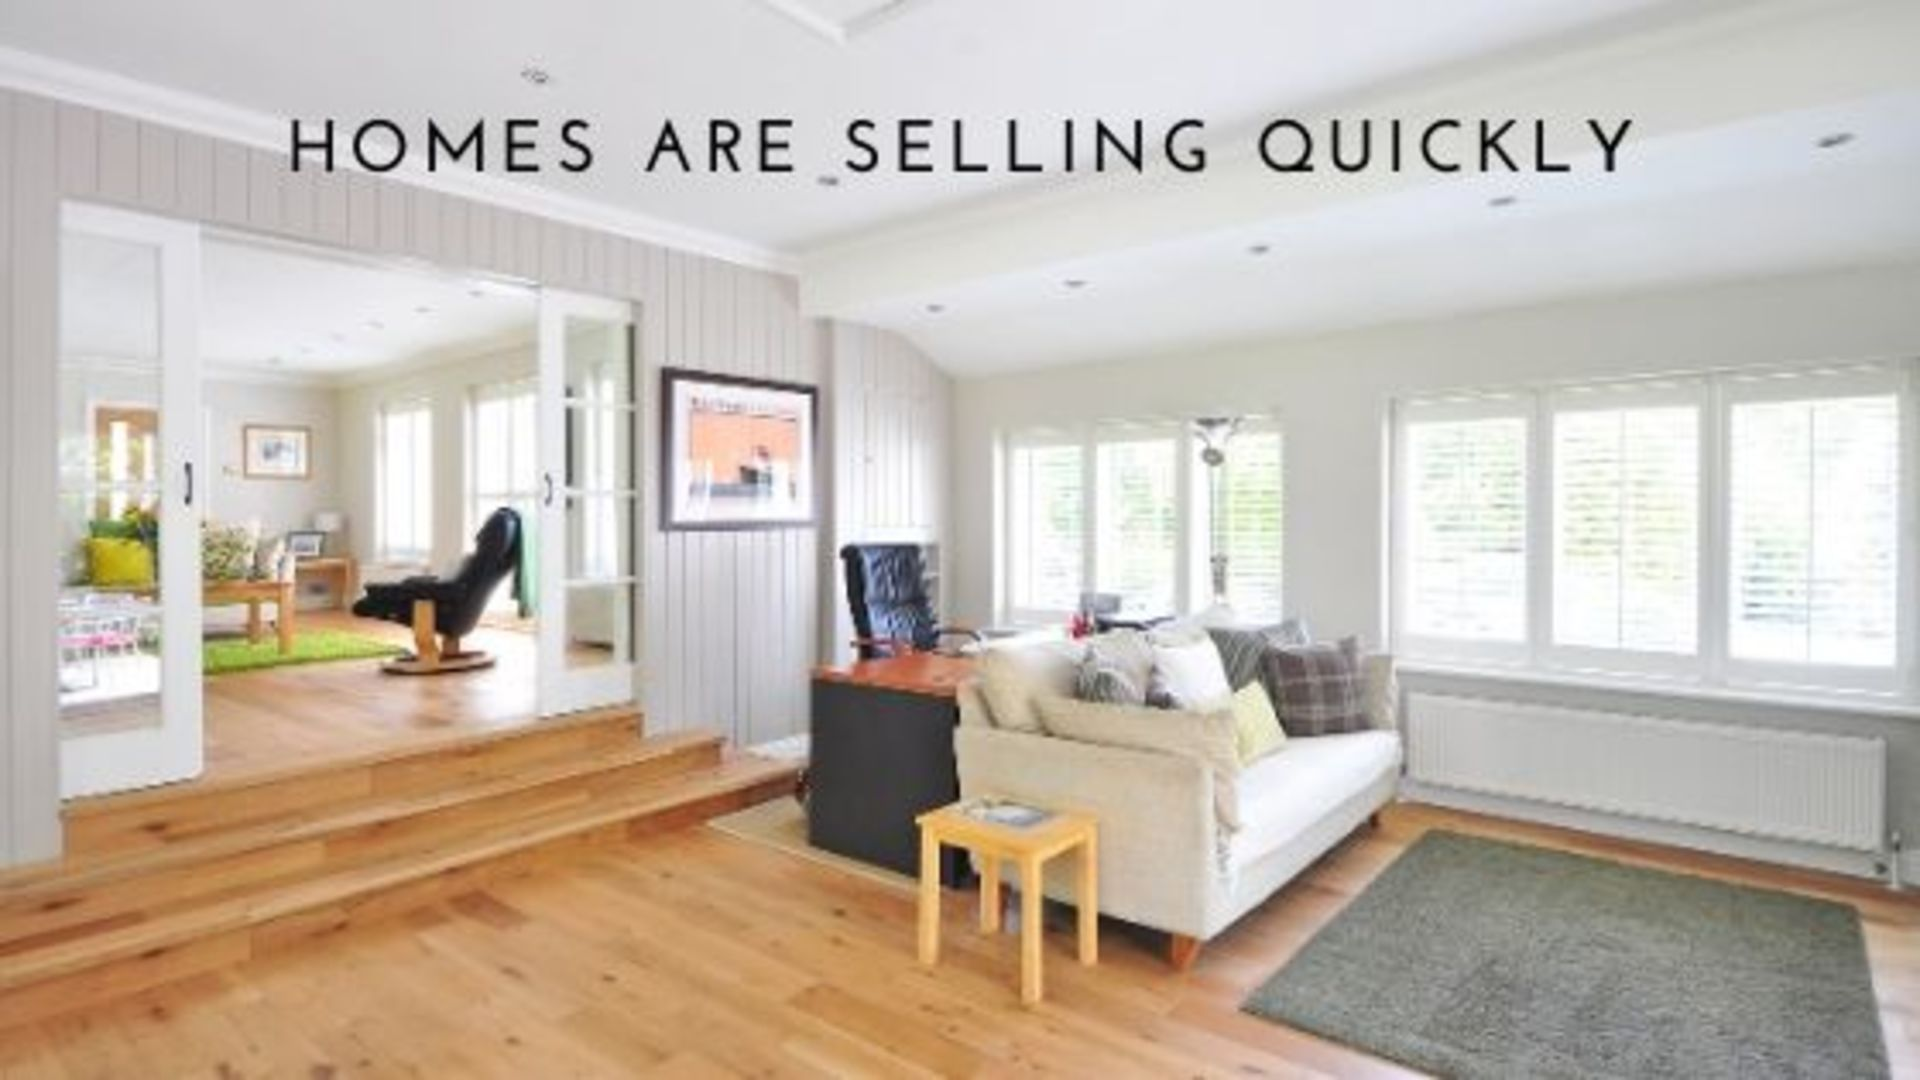 Homes Are Selling Quickly